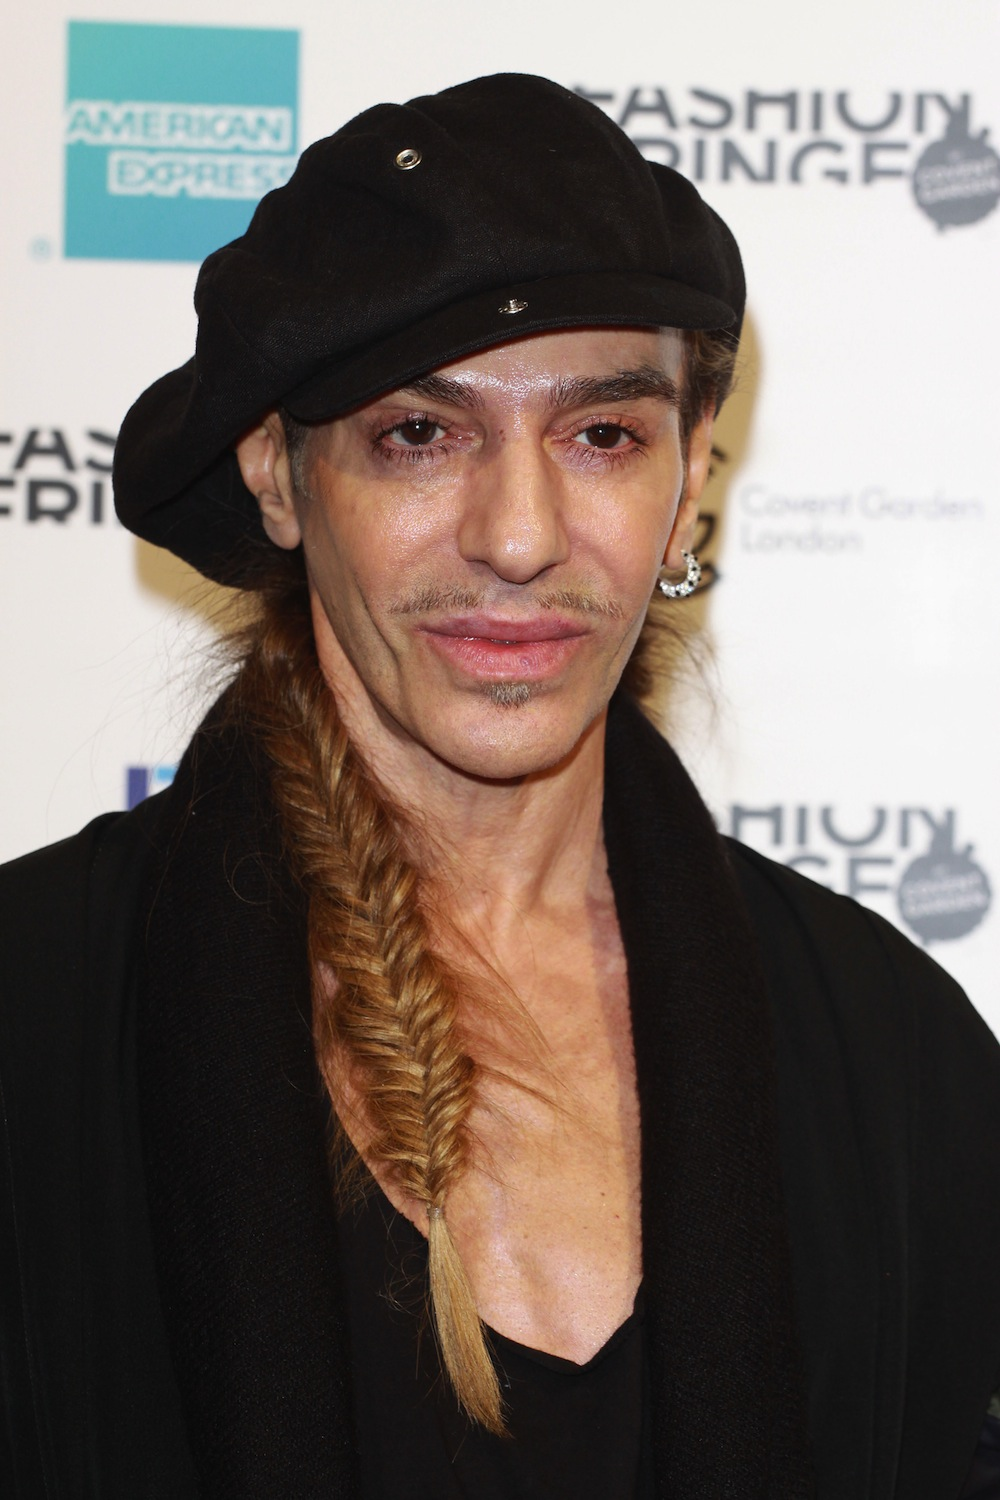 John Galliano's Next Move